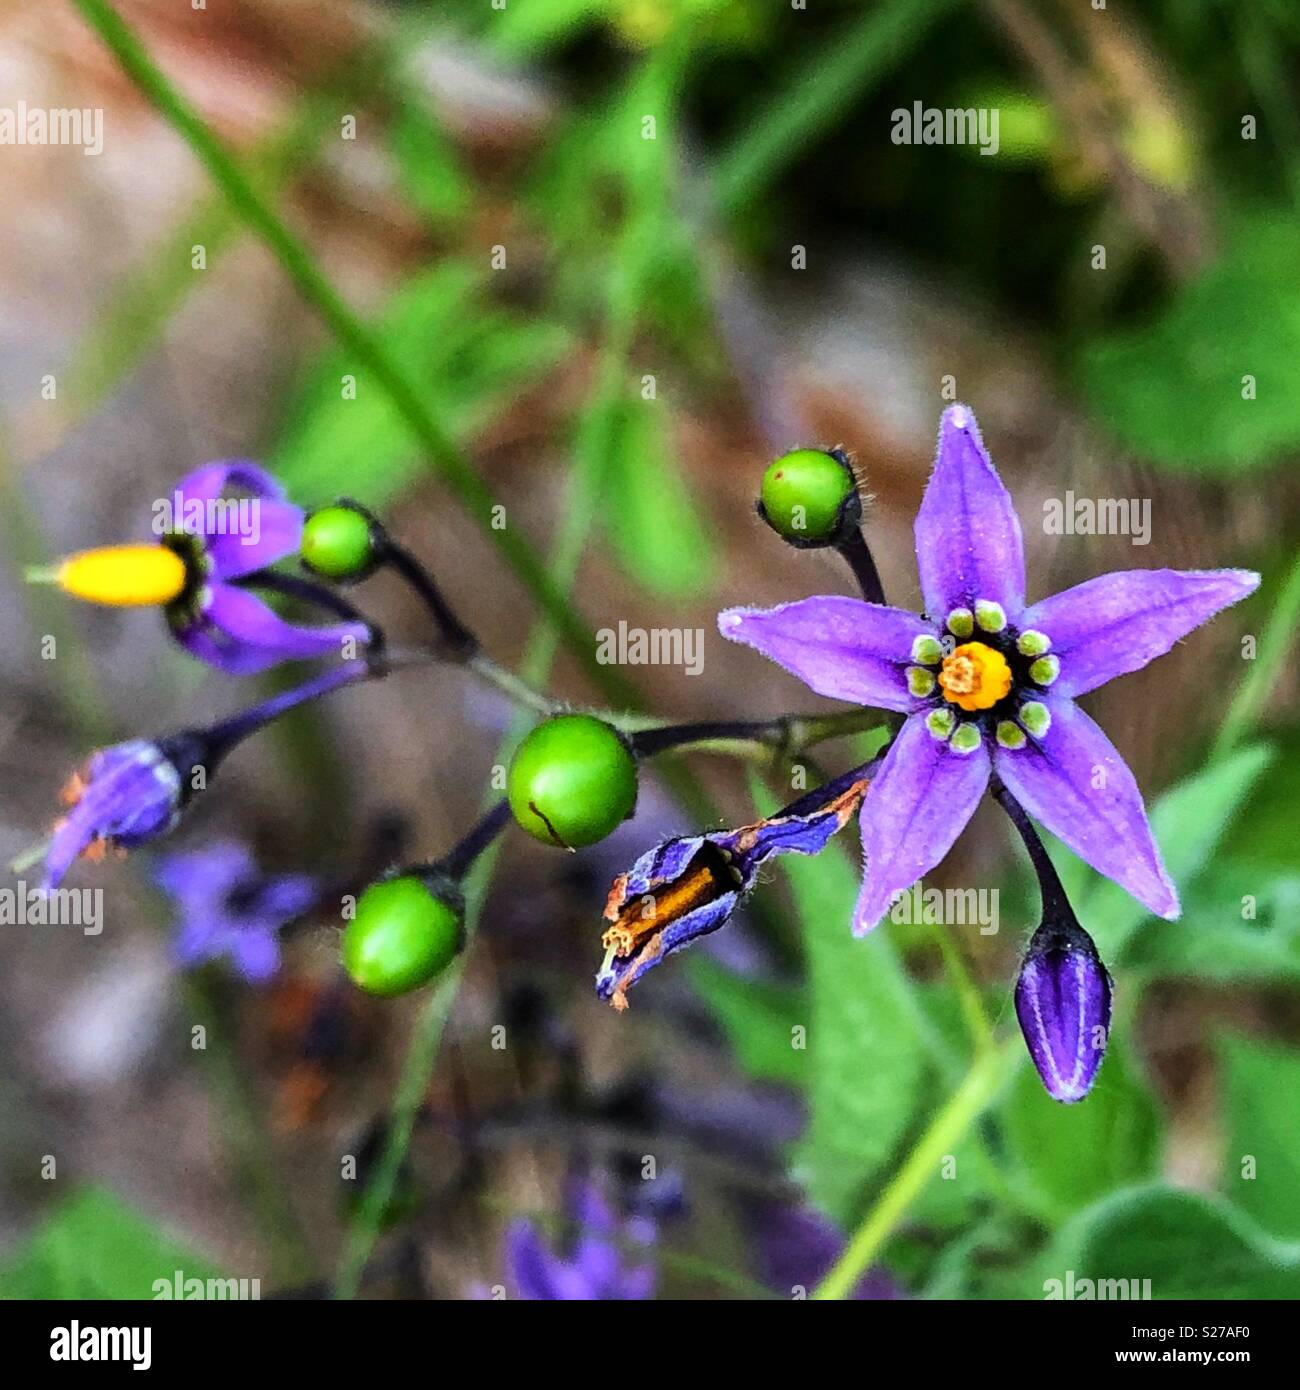 Deadly Nightshade Plant High Resolution Stock Photography And Images Alamy